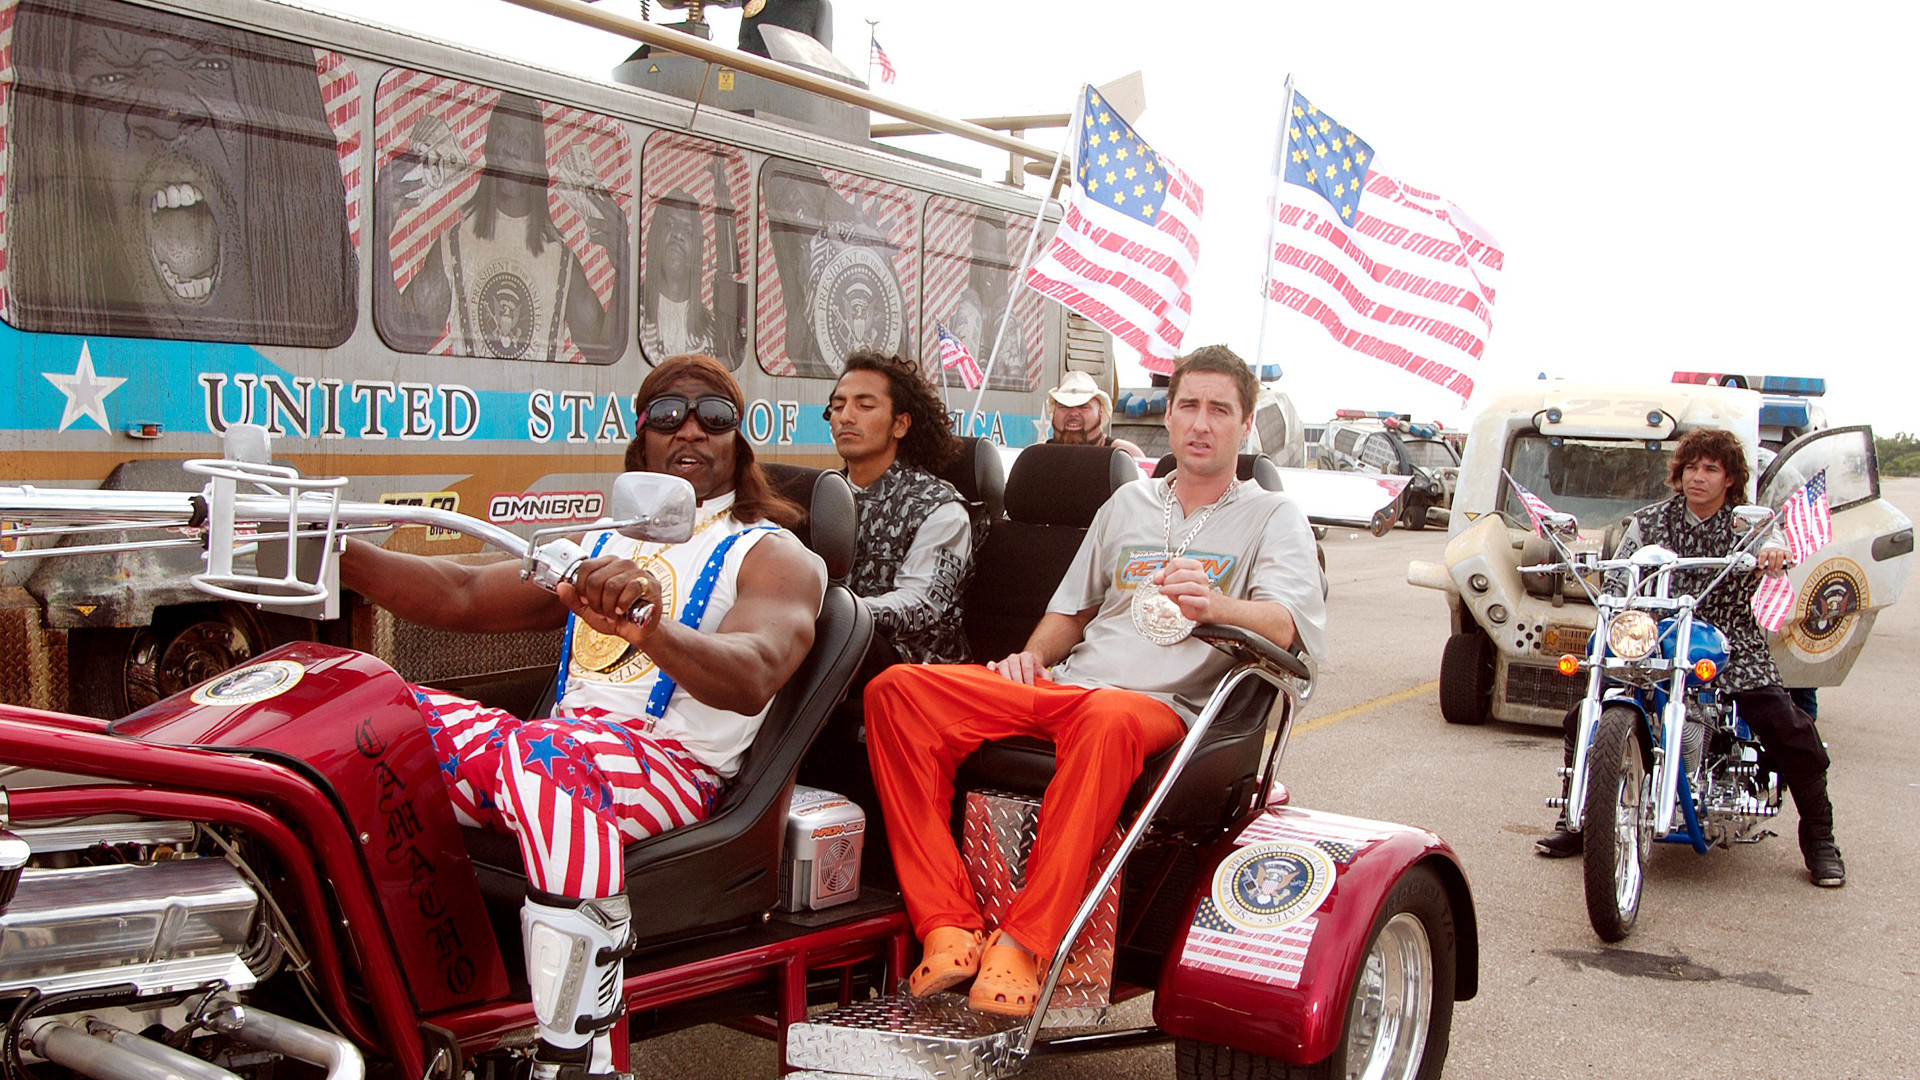 idiocracy first scene